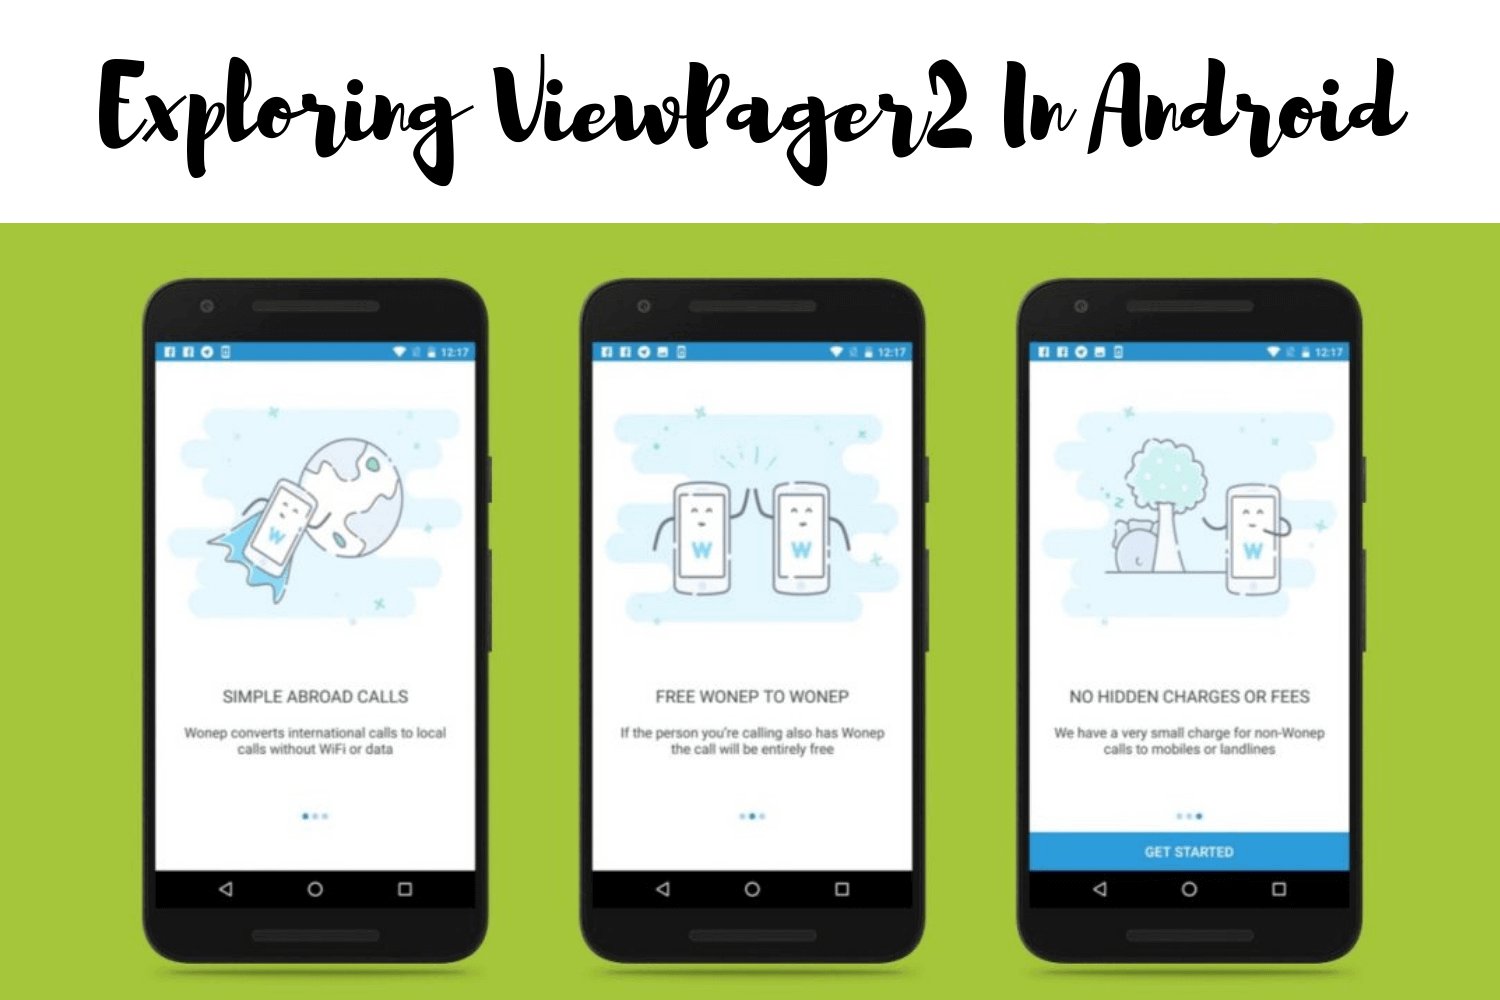 Exploring Android ViewPager2 in Android